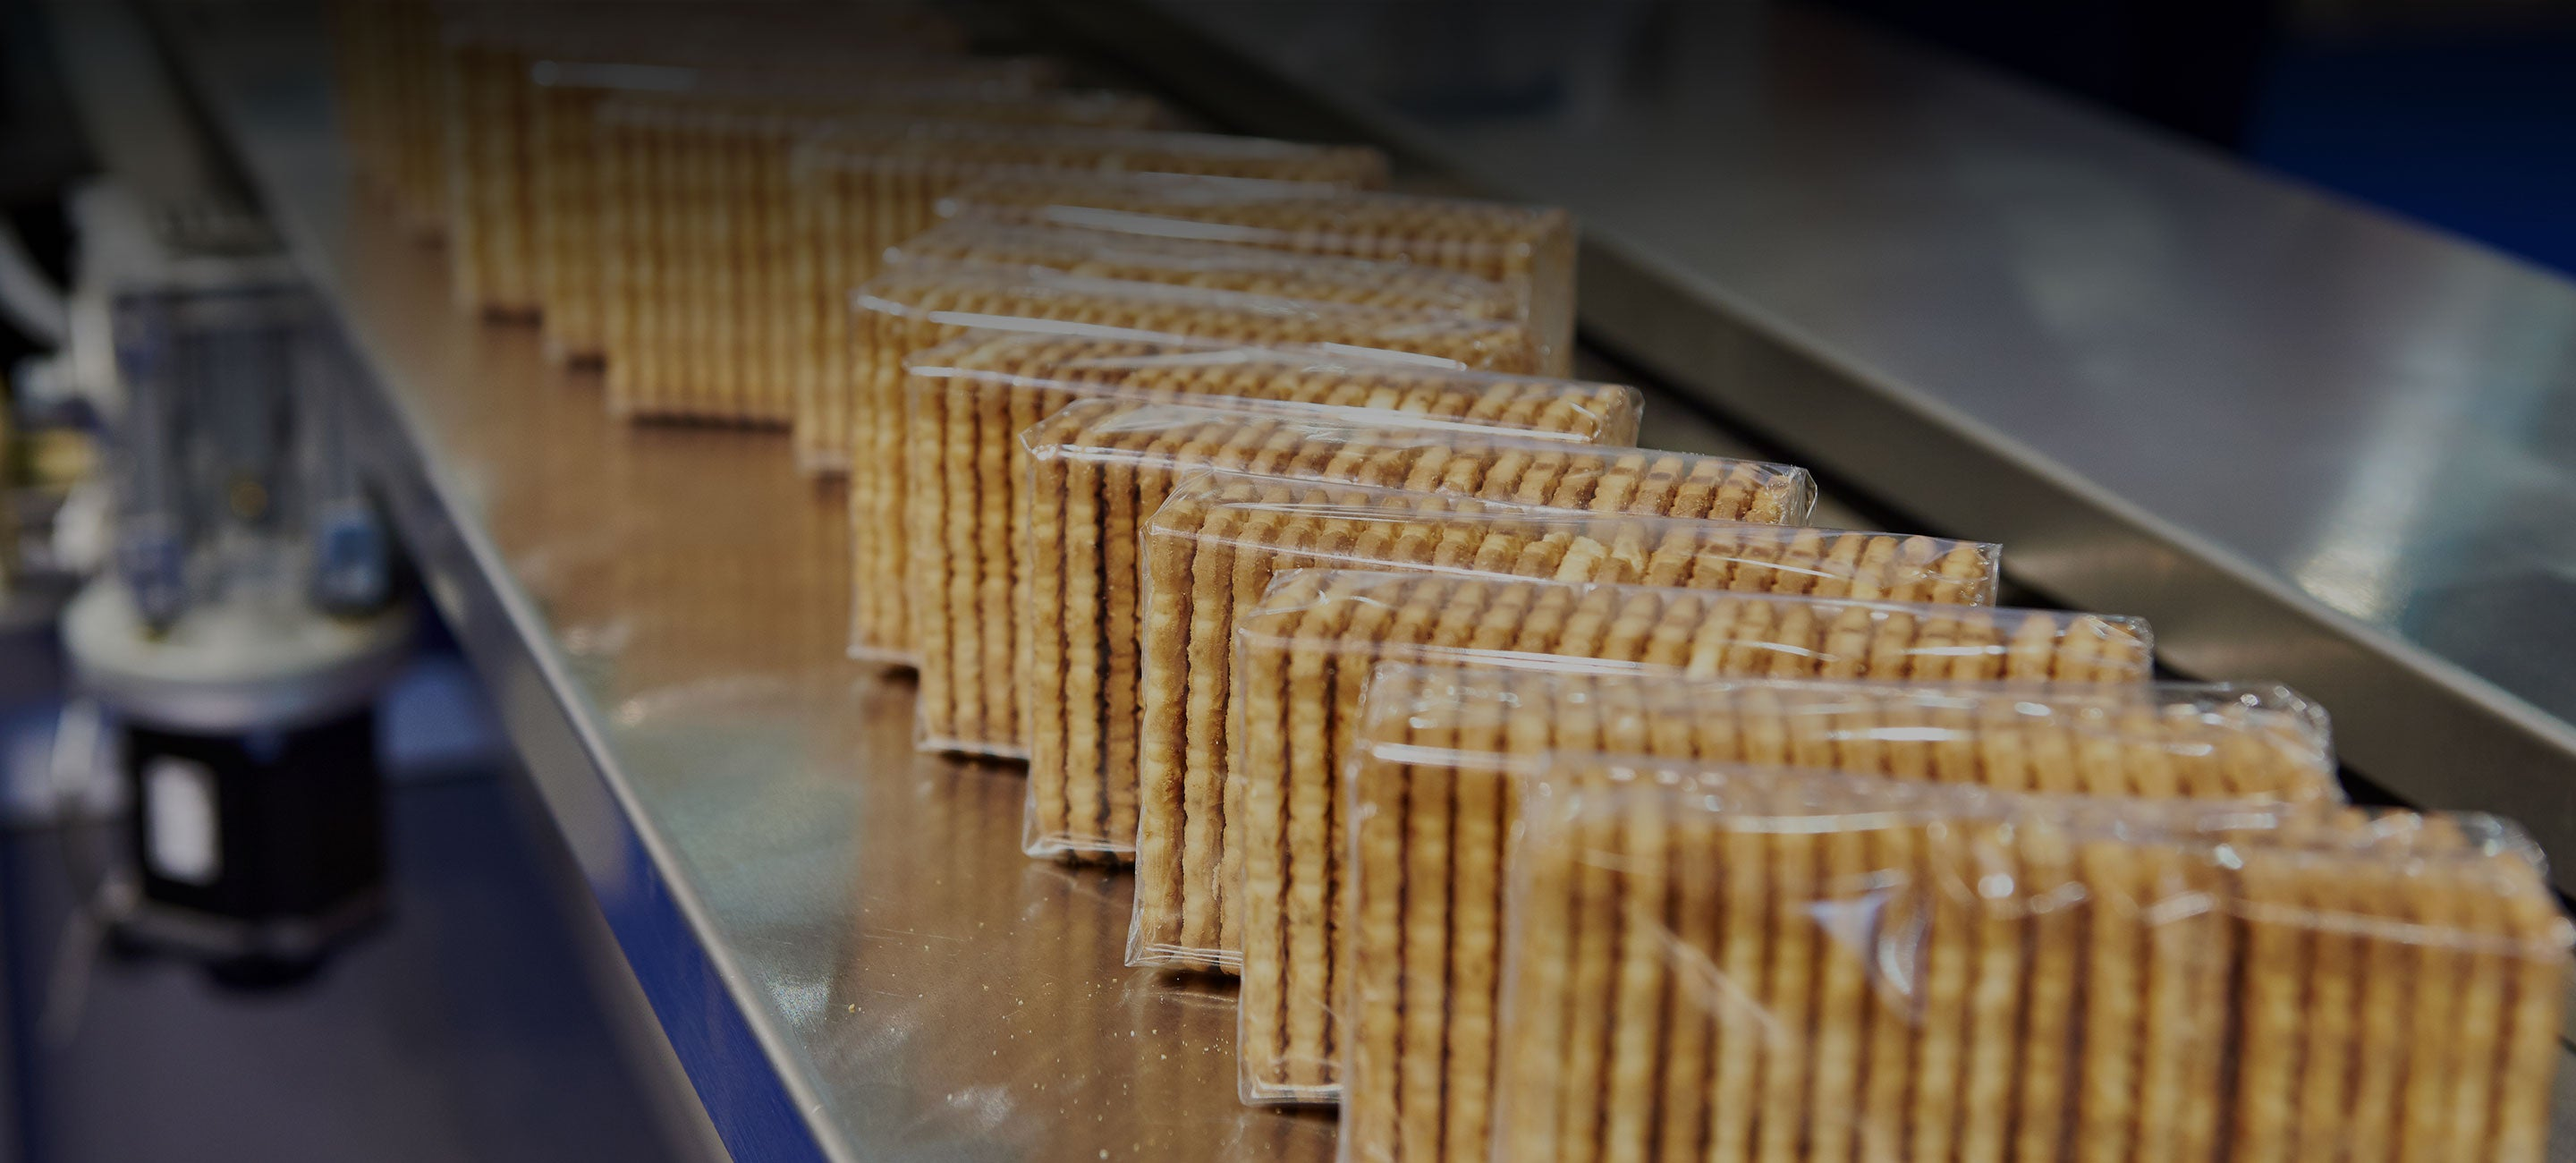 Food and Beverage - Packing Manufacturing Platform - Crackers